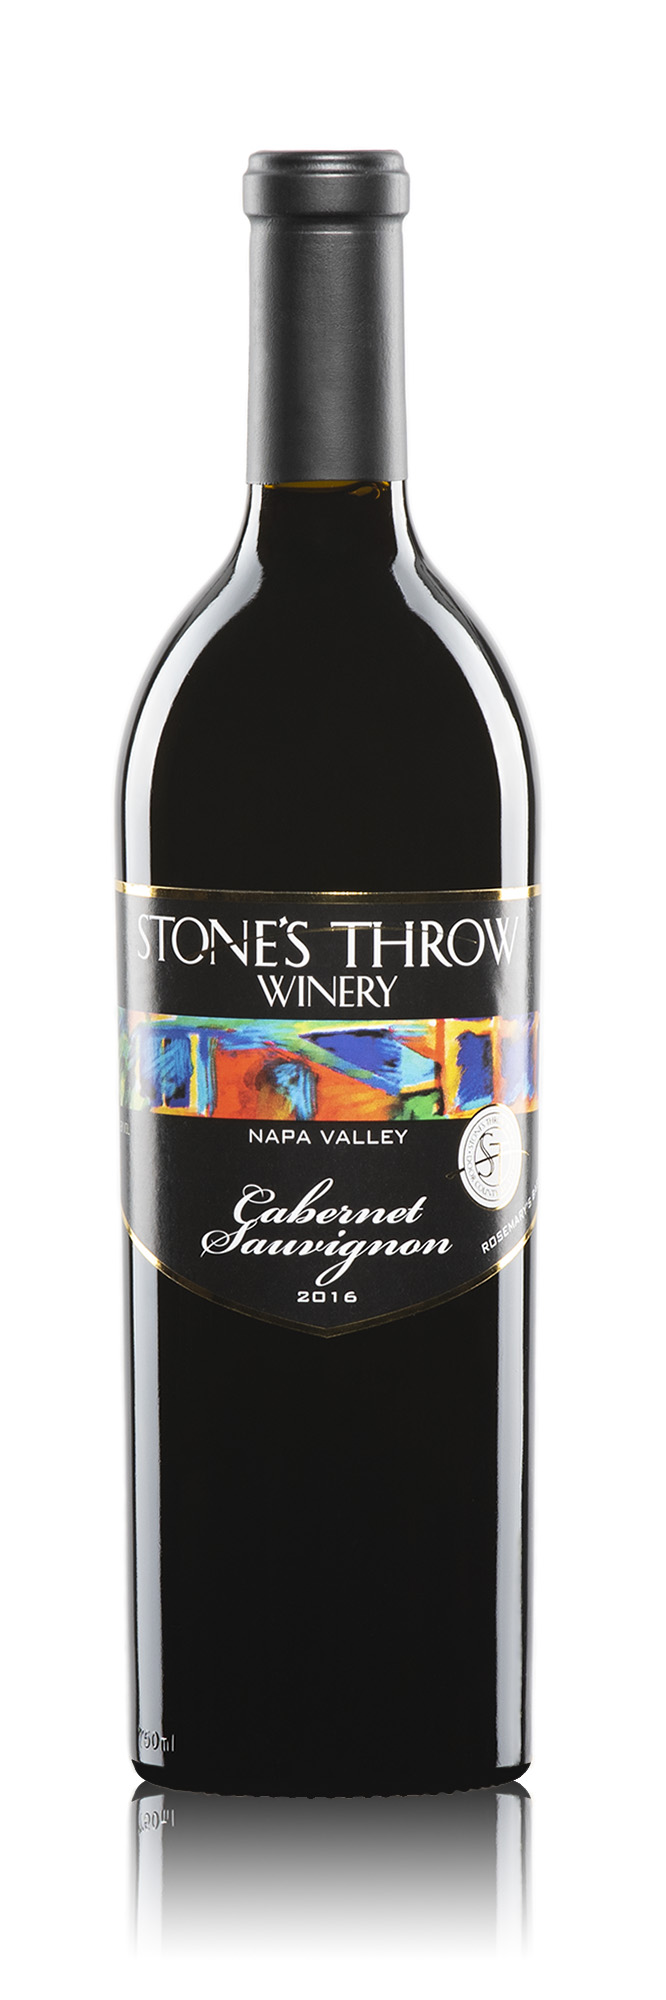 Cabernet Sauvignon, Rosemary's Baby Reserve Product Image